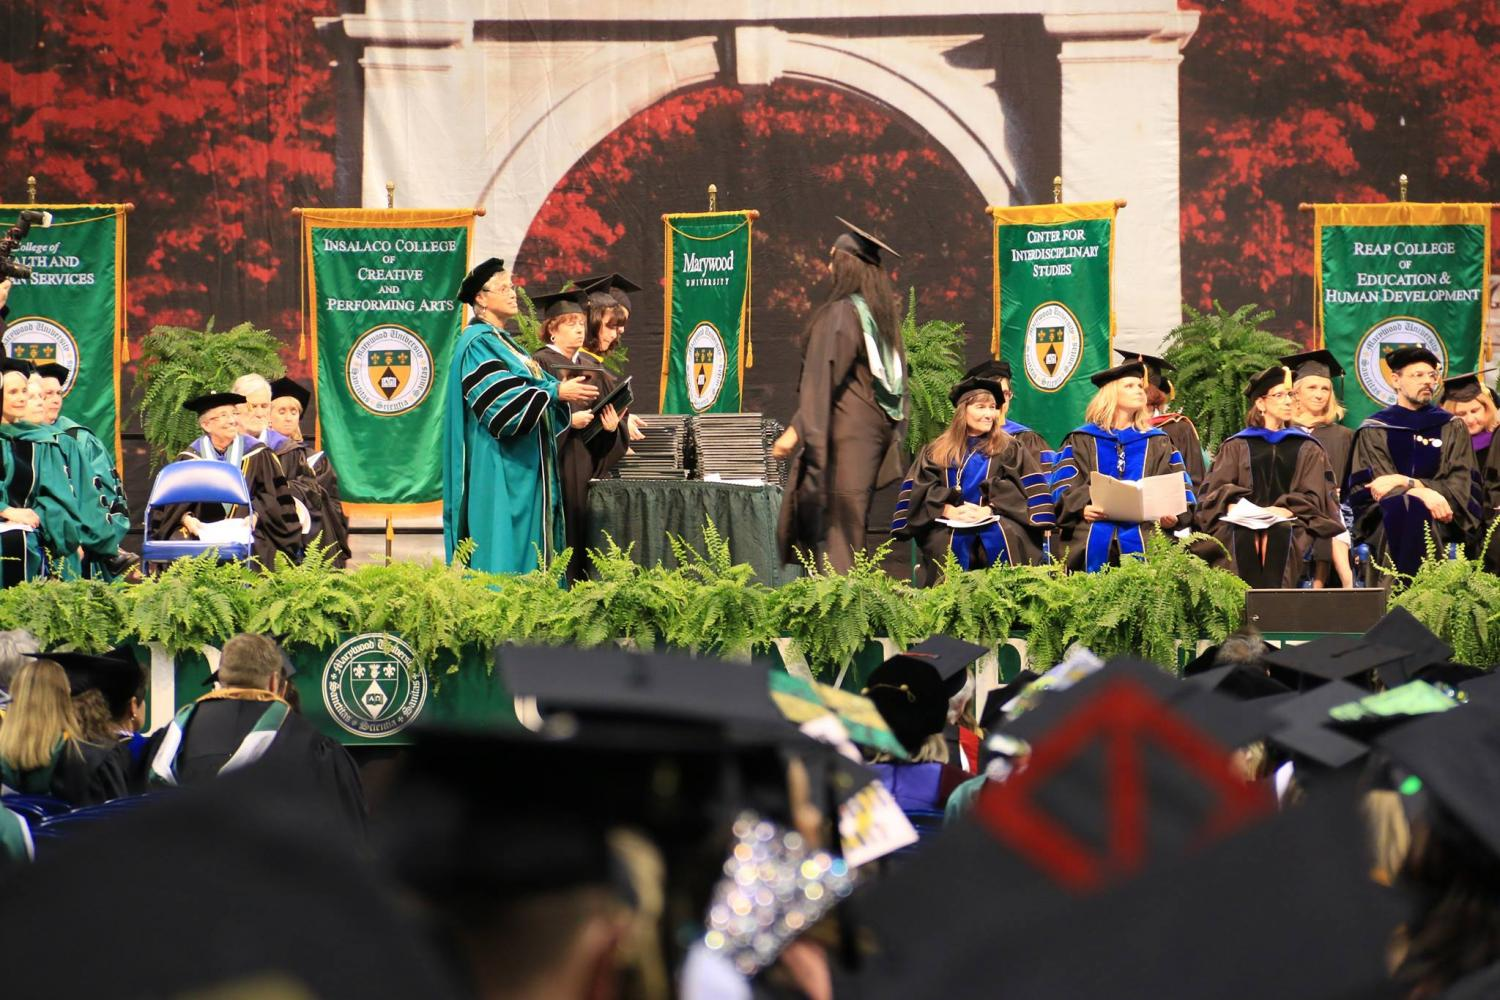 Marywood+confers+938+degrees+at+99th+commencement